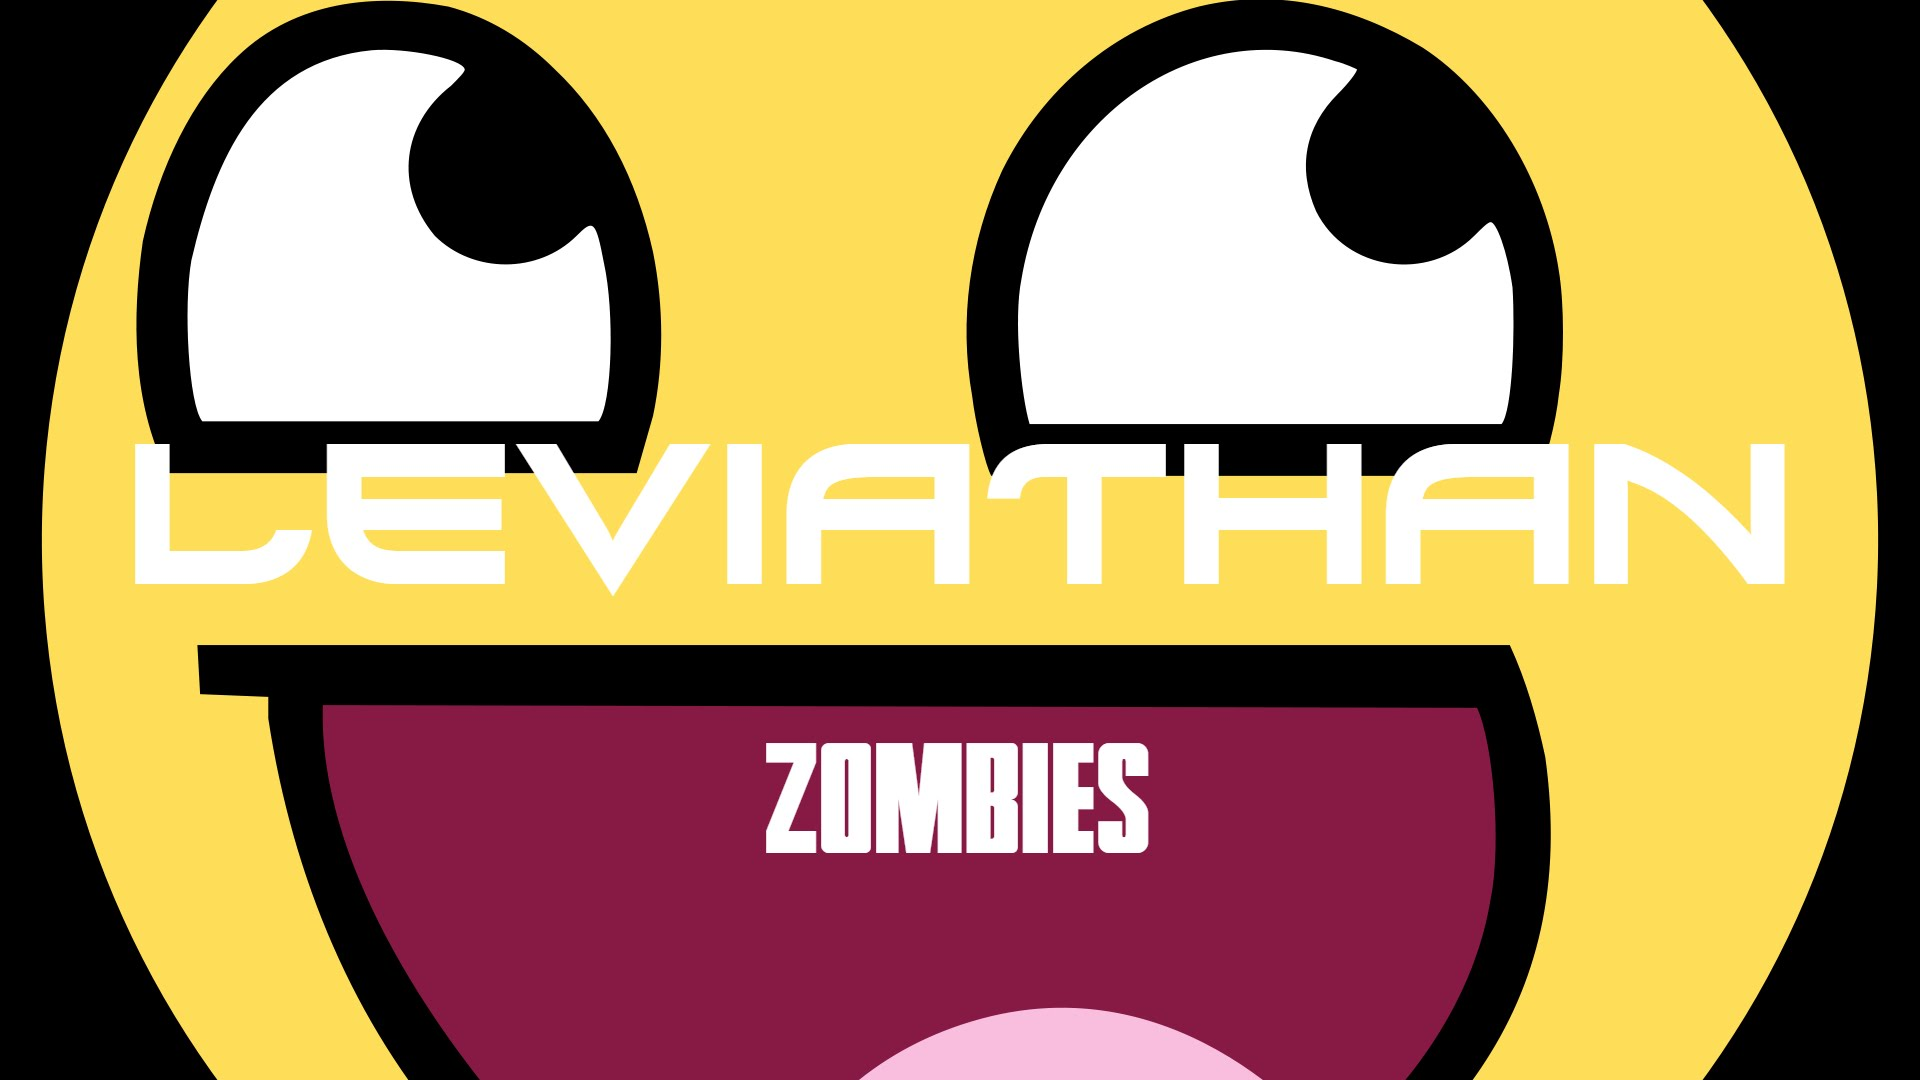 Glitch clipart yellow Zombies Custom Invincibility YouTube Map